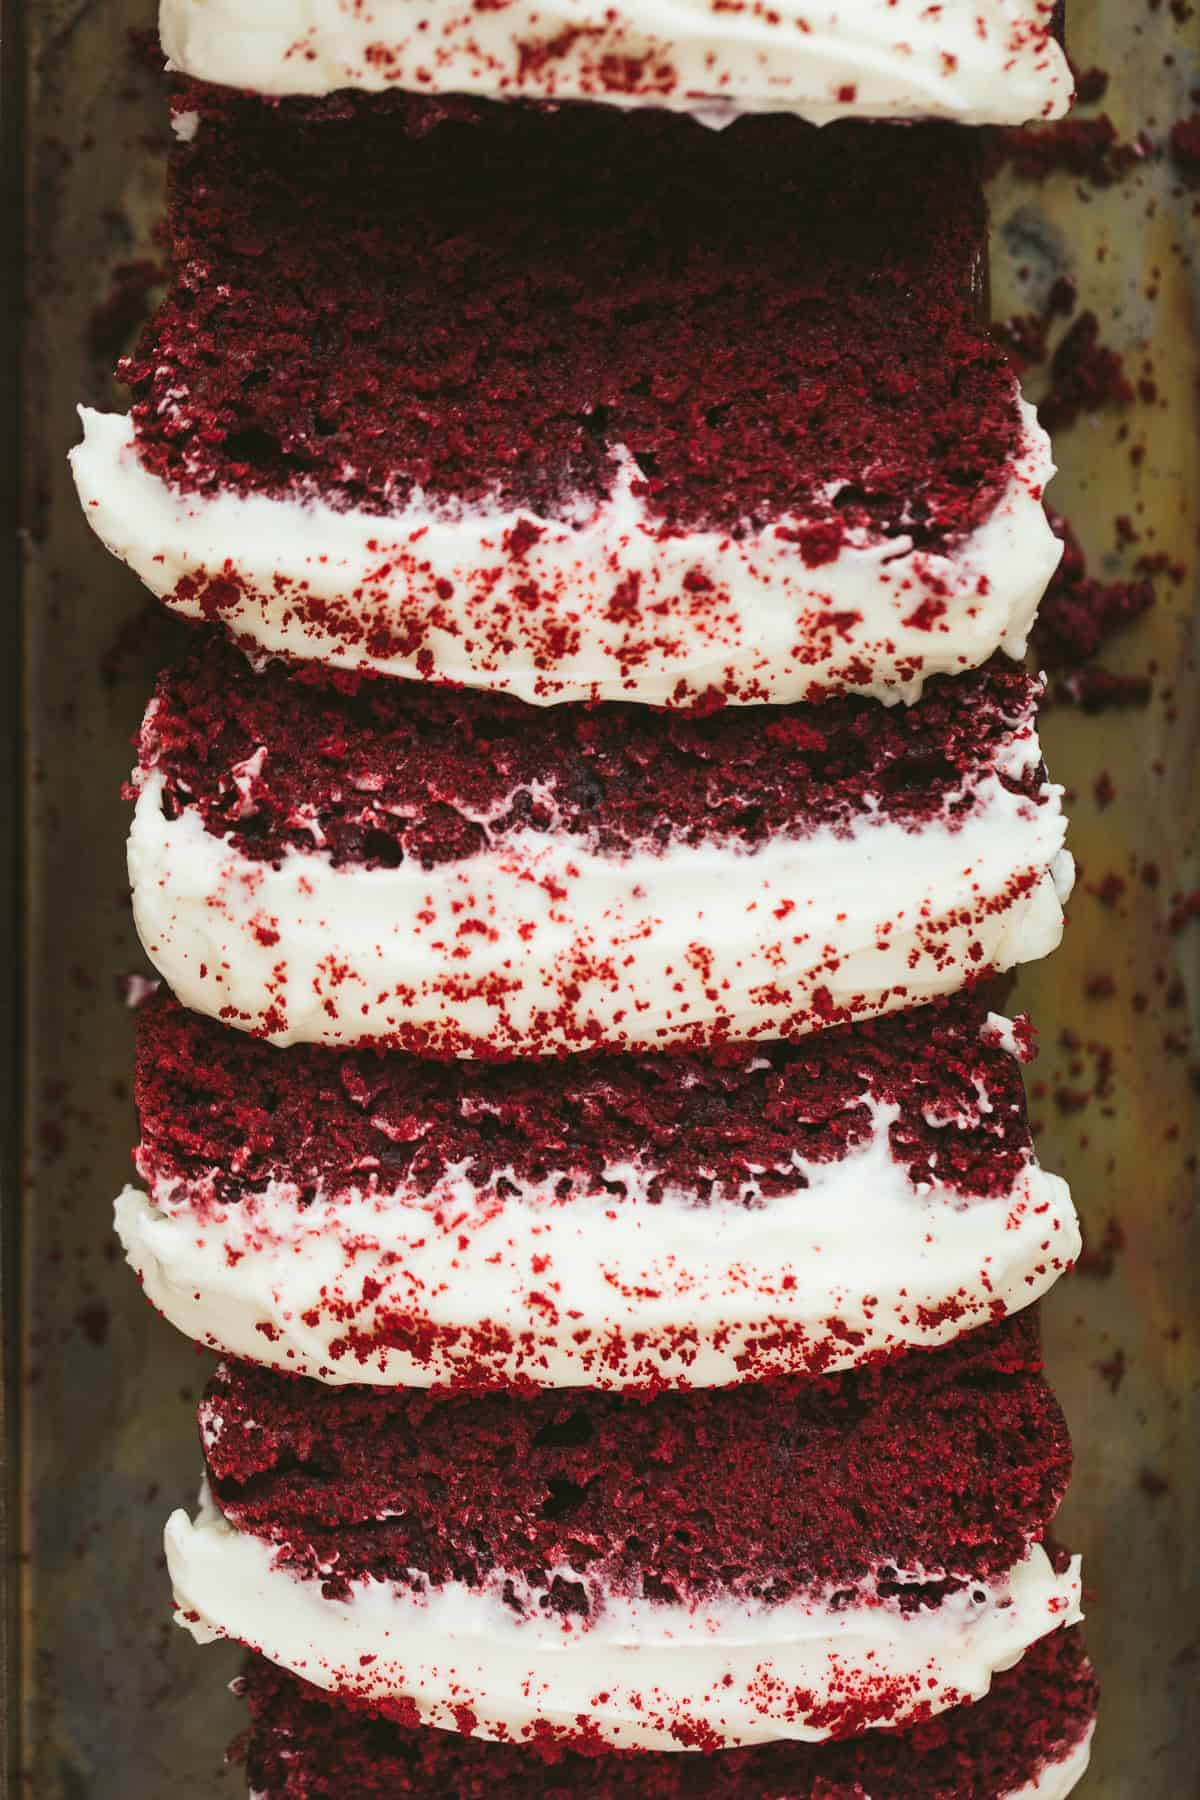 A sliced red velvet cake.